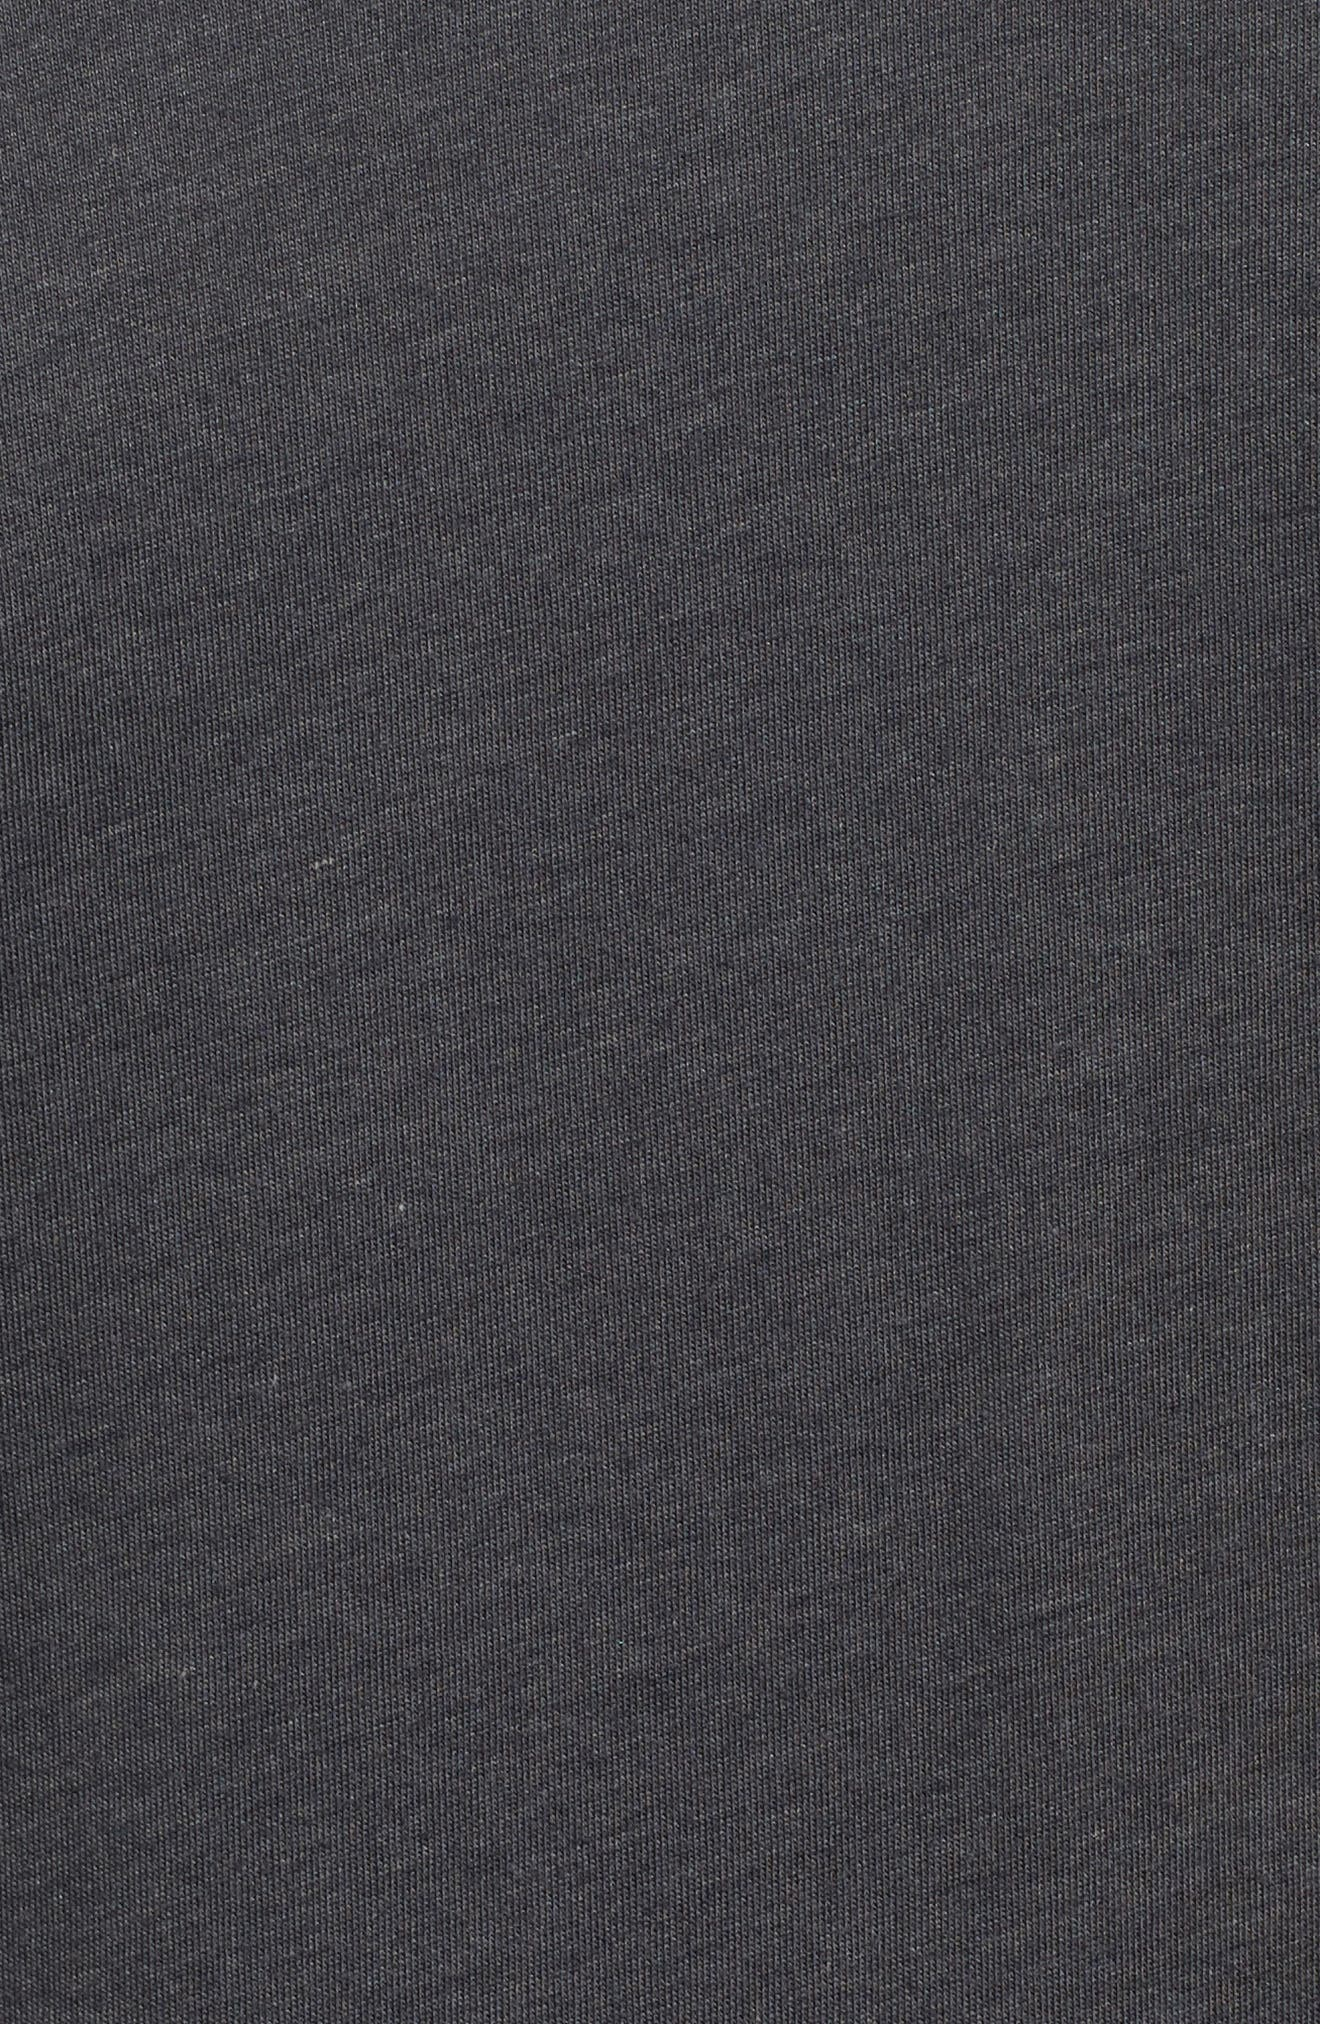 Training Dry Project X T-Shirt,                             Alternate thumbnail 5, color,                             Anthracite/ Black